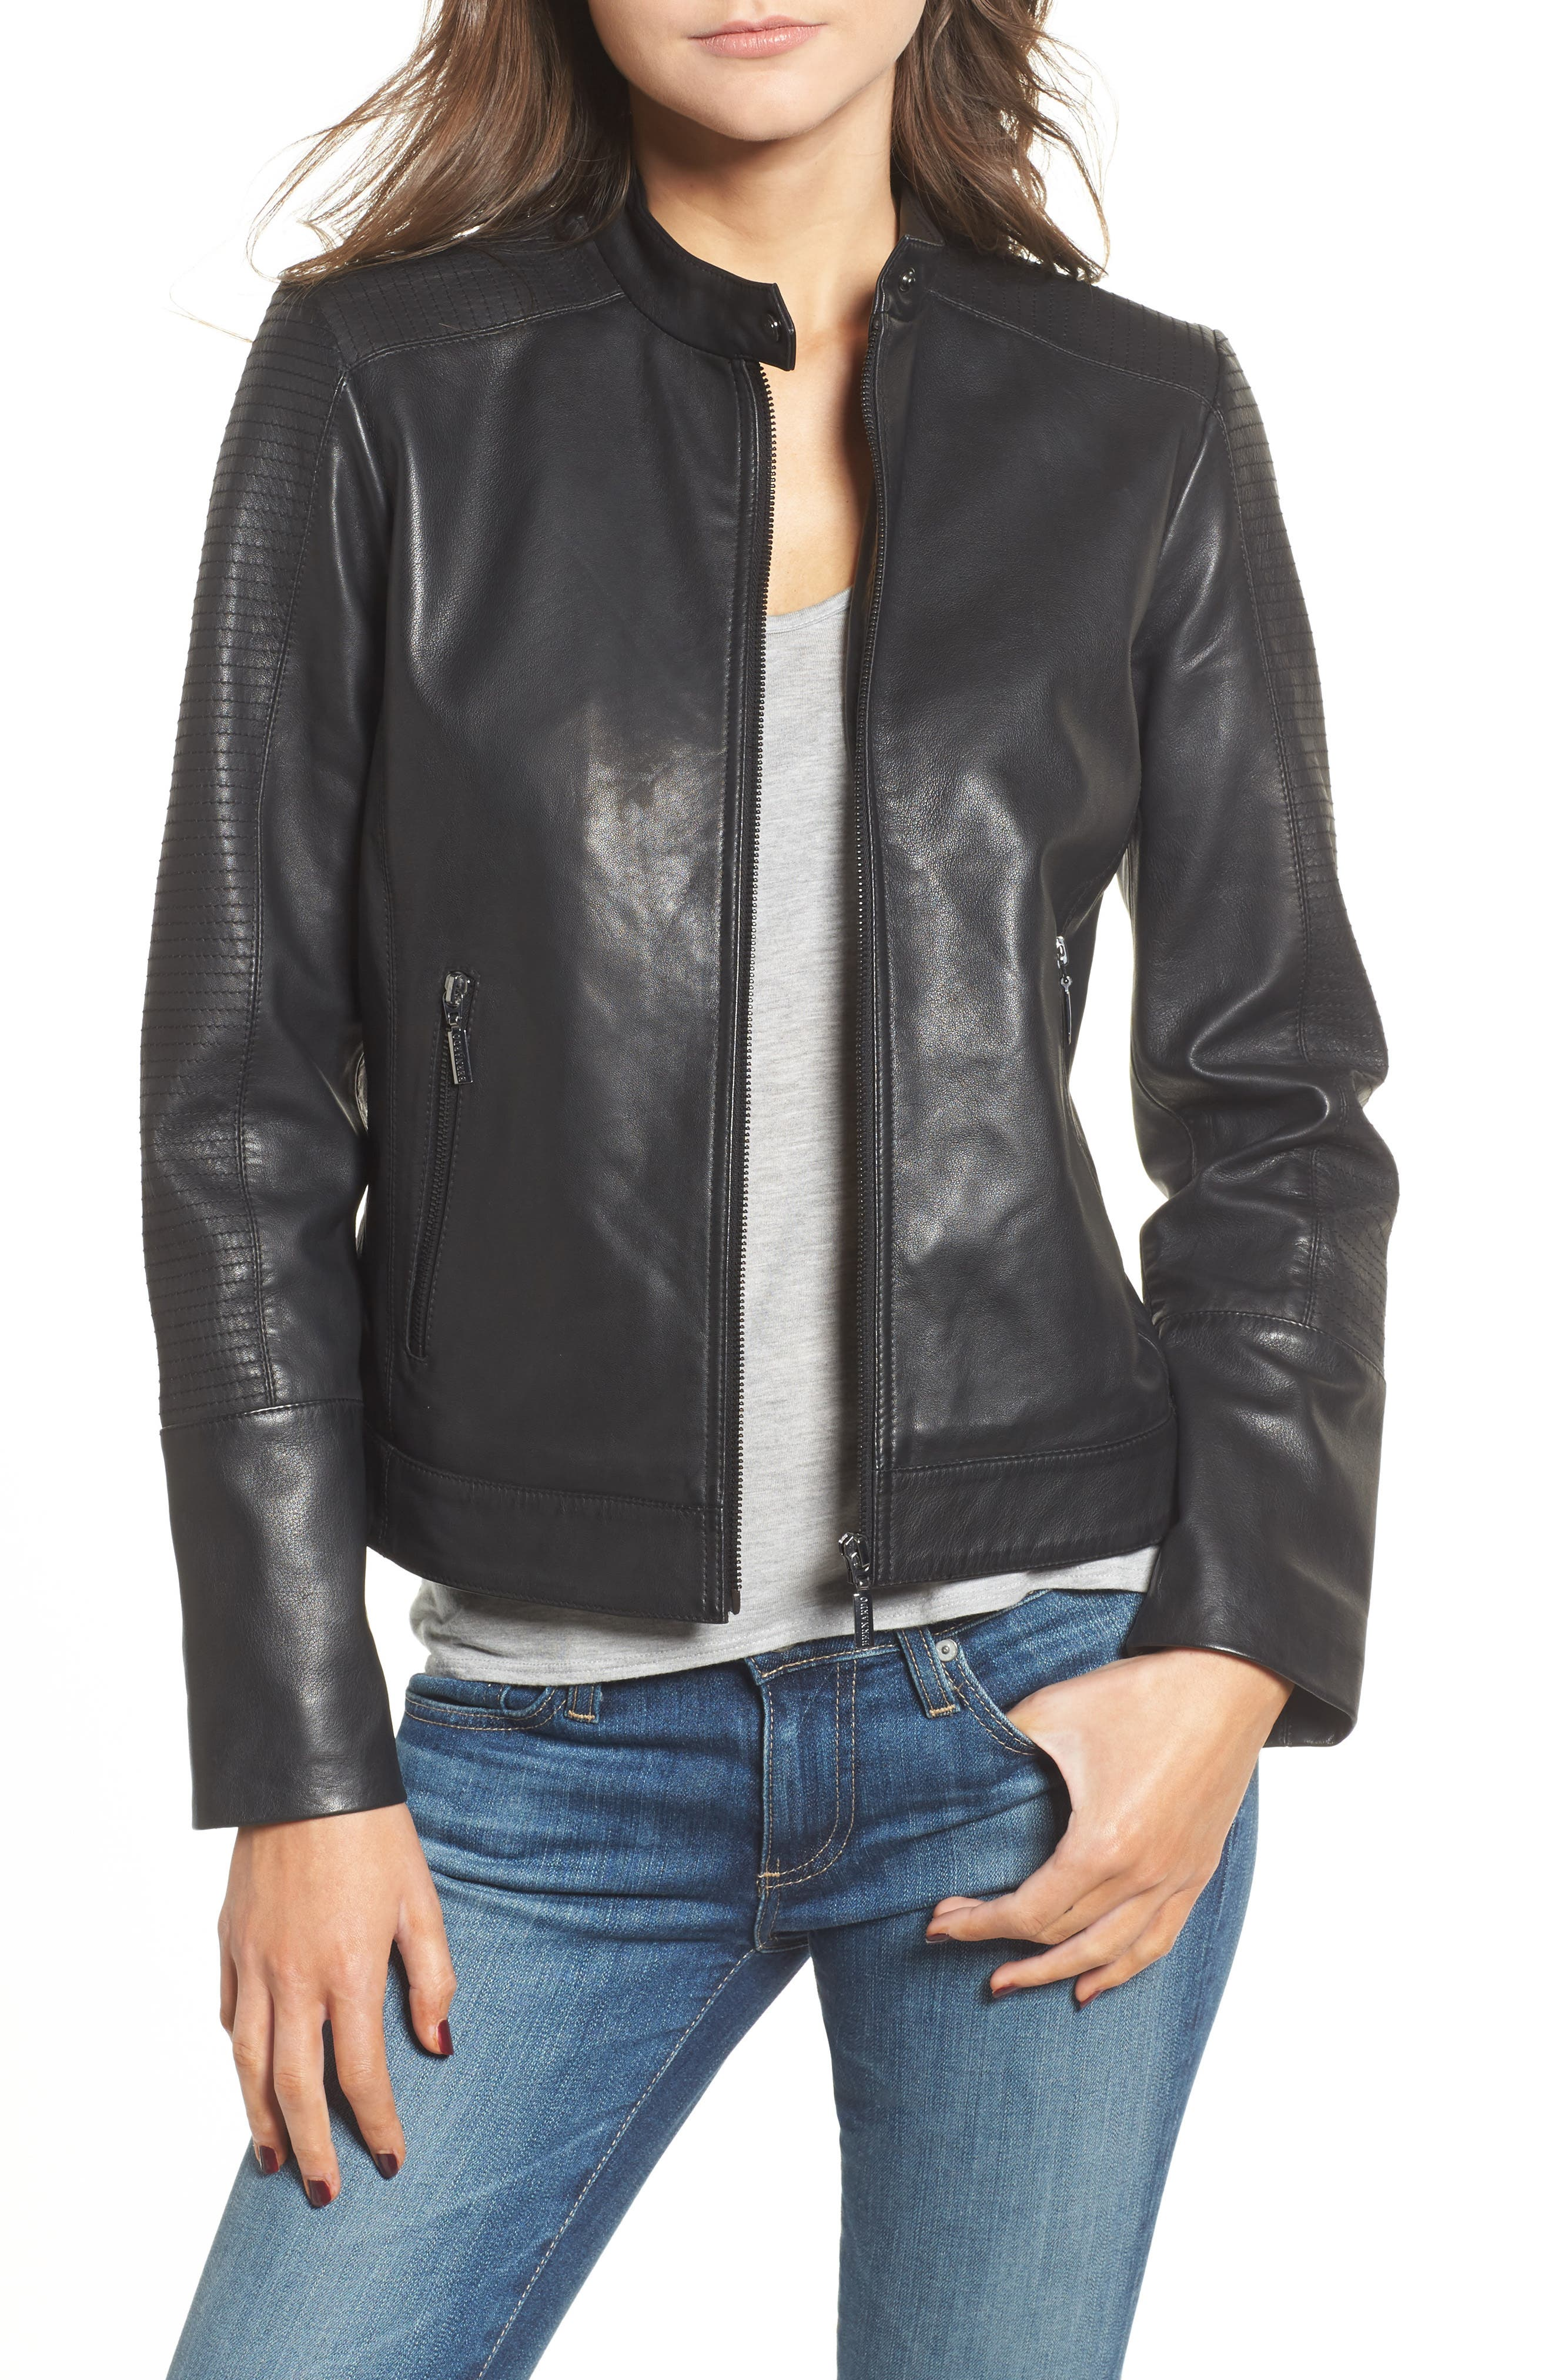 Kirwin Leather Moto Jacket,                         Main,                         color, 001